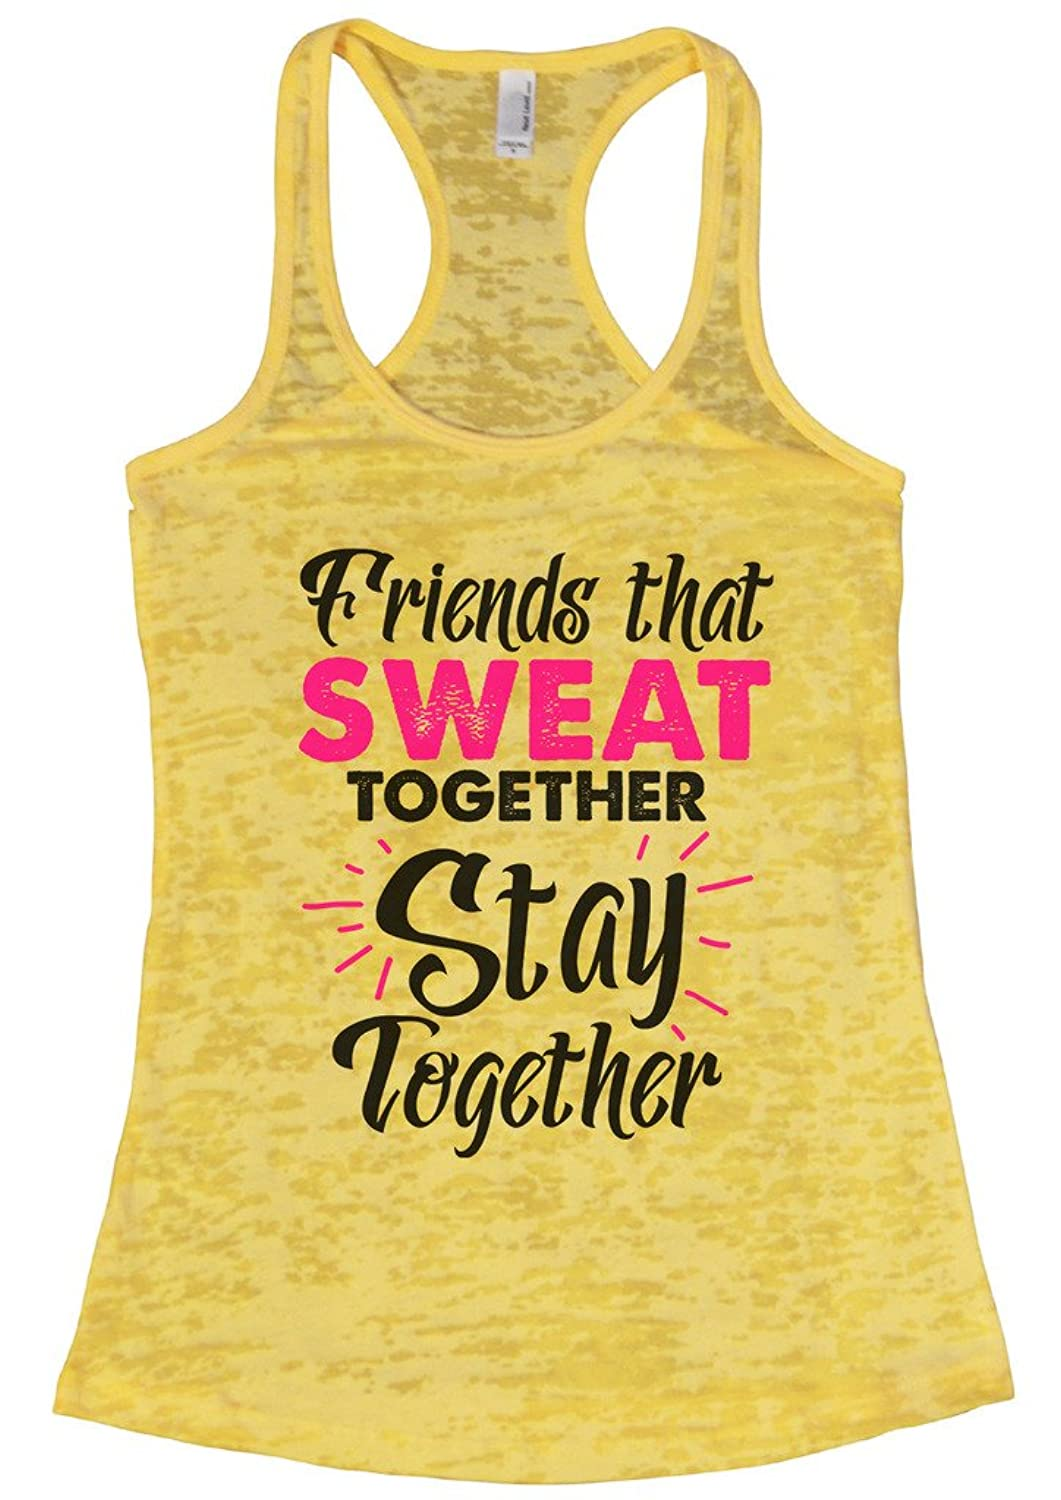 Women鈥檚 Workout Partner 鈥淔riends That Sweat Together Stay Together鈥